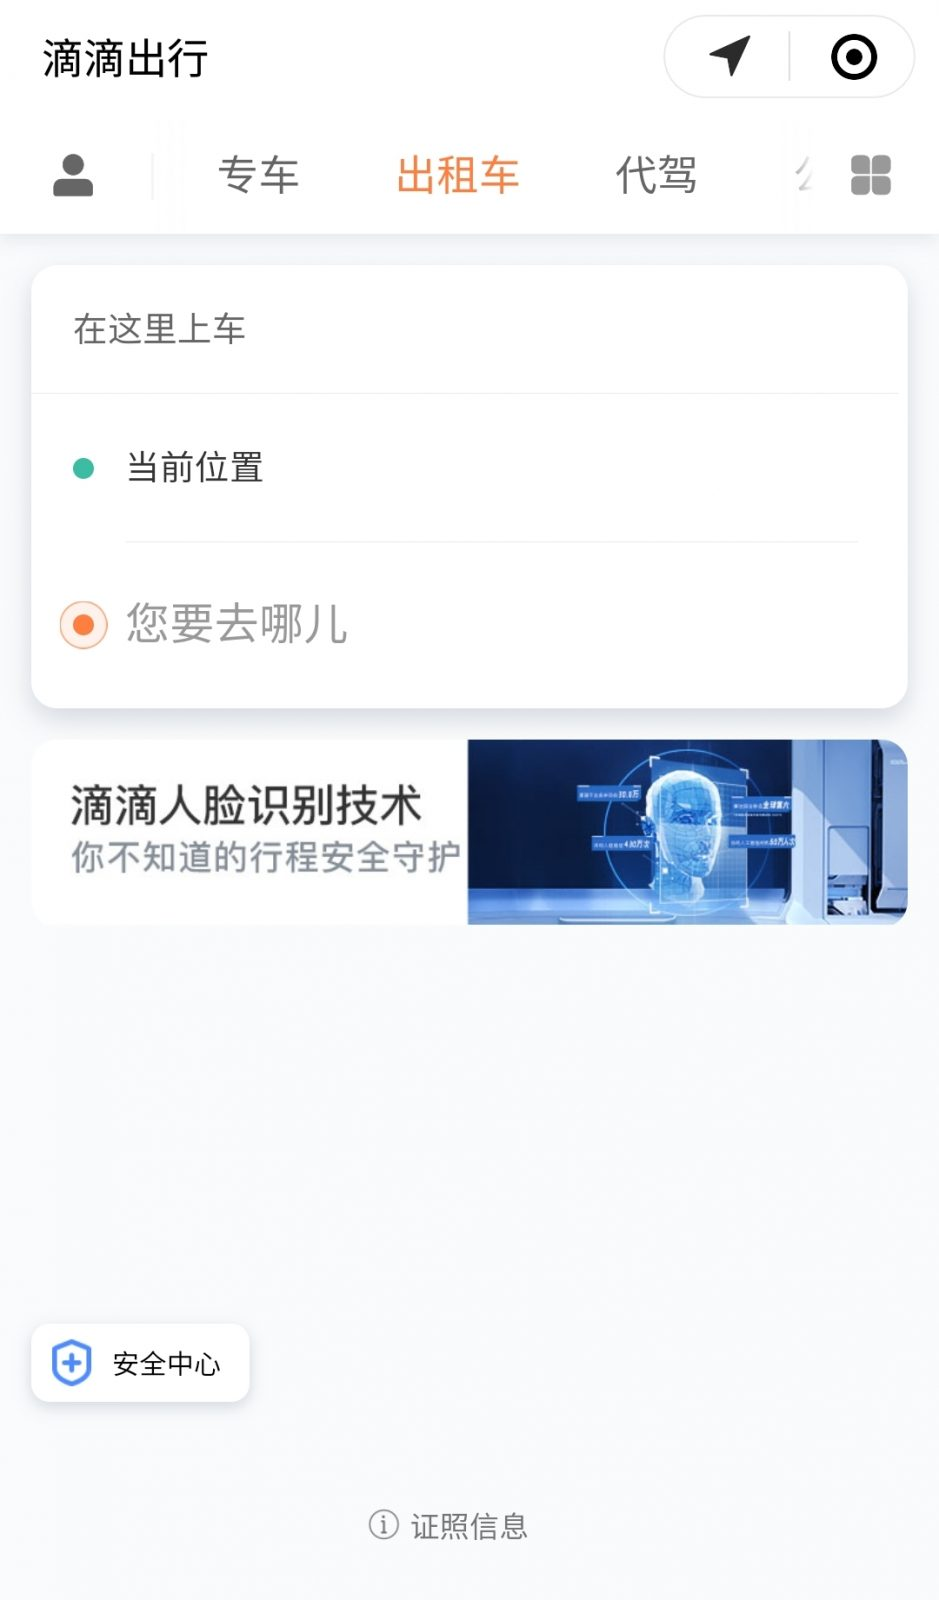 Didi android ios wechat alipay 滴滴出行 按掉 苹果 微信支付宝